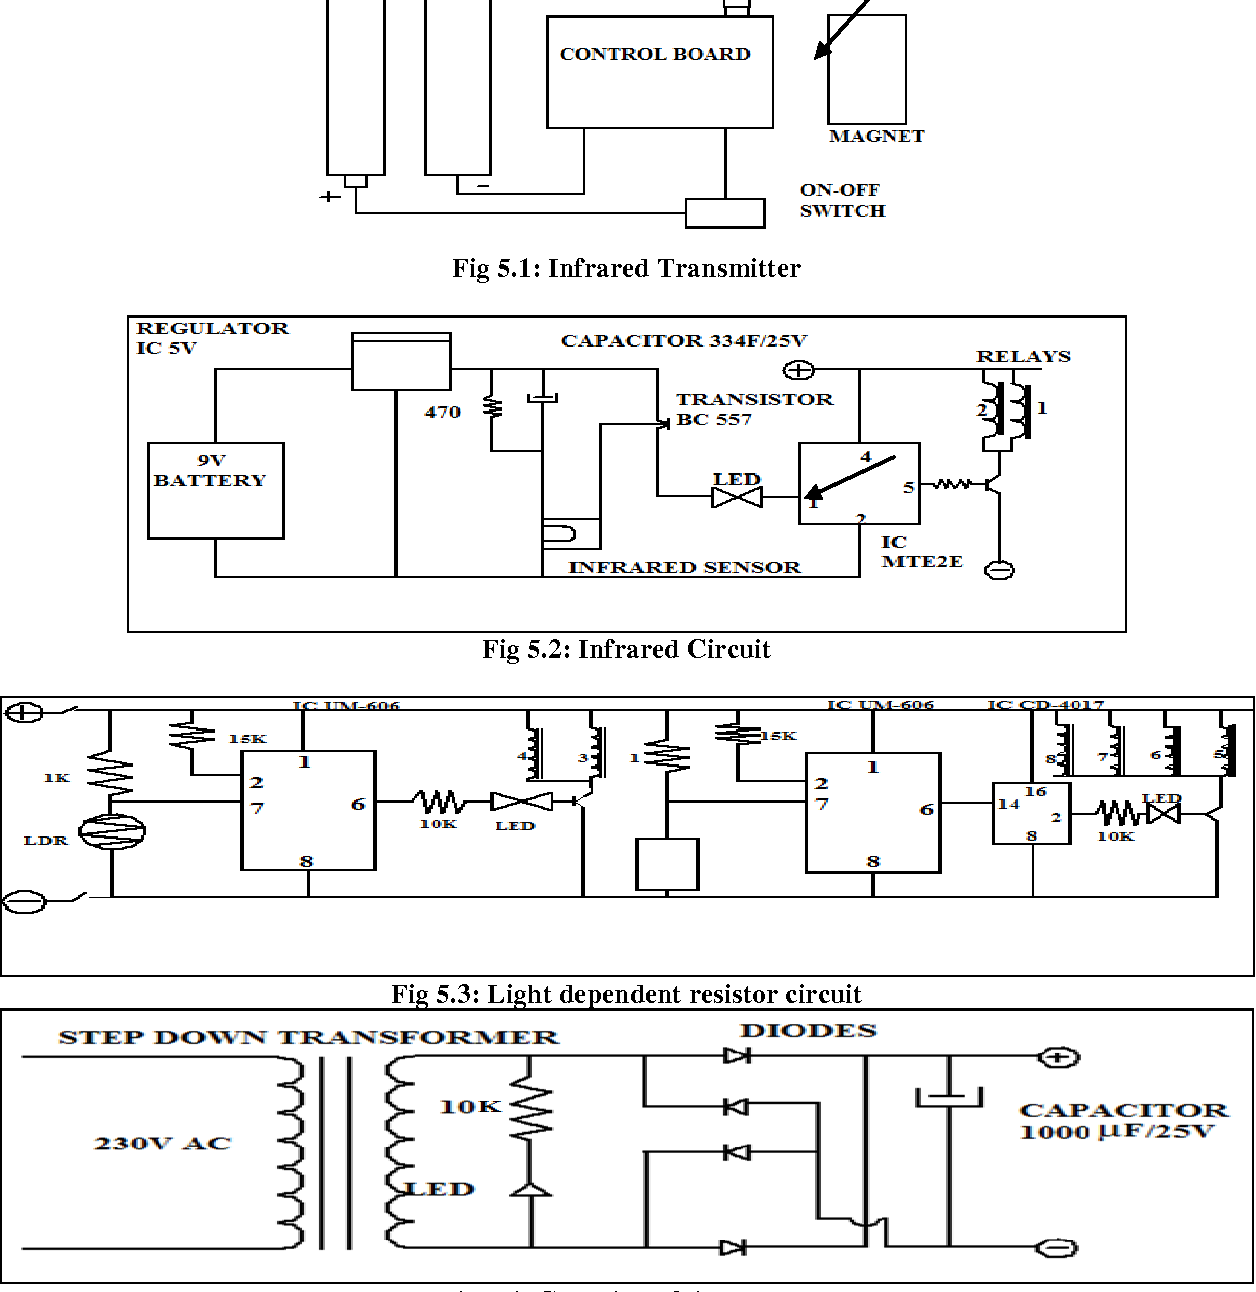 Fabrication Of Automated Electronic Trolley Light Dependent Resistor Circuit Fig 53